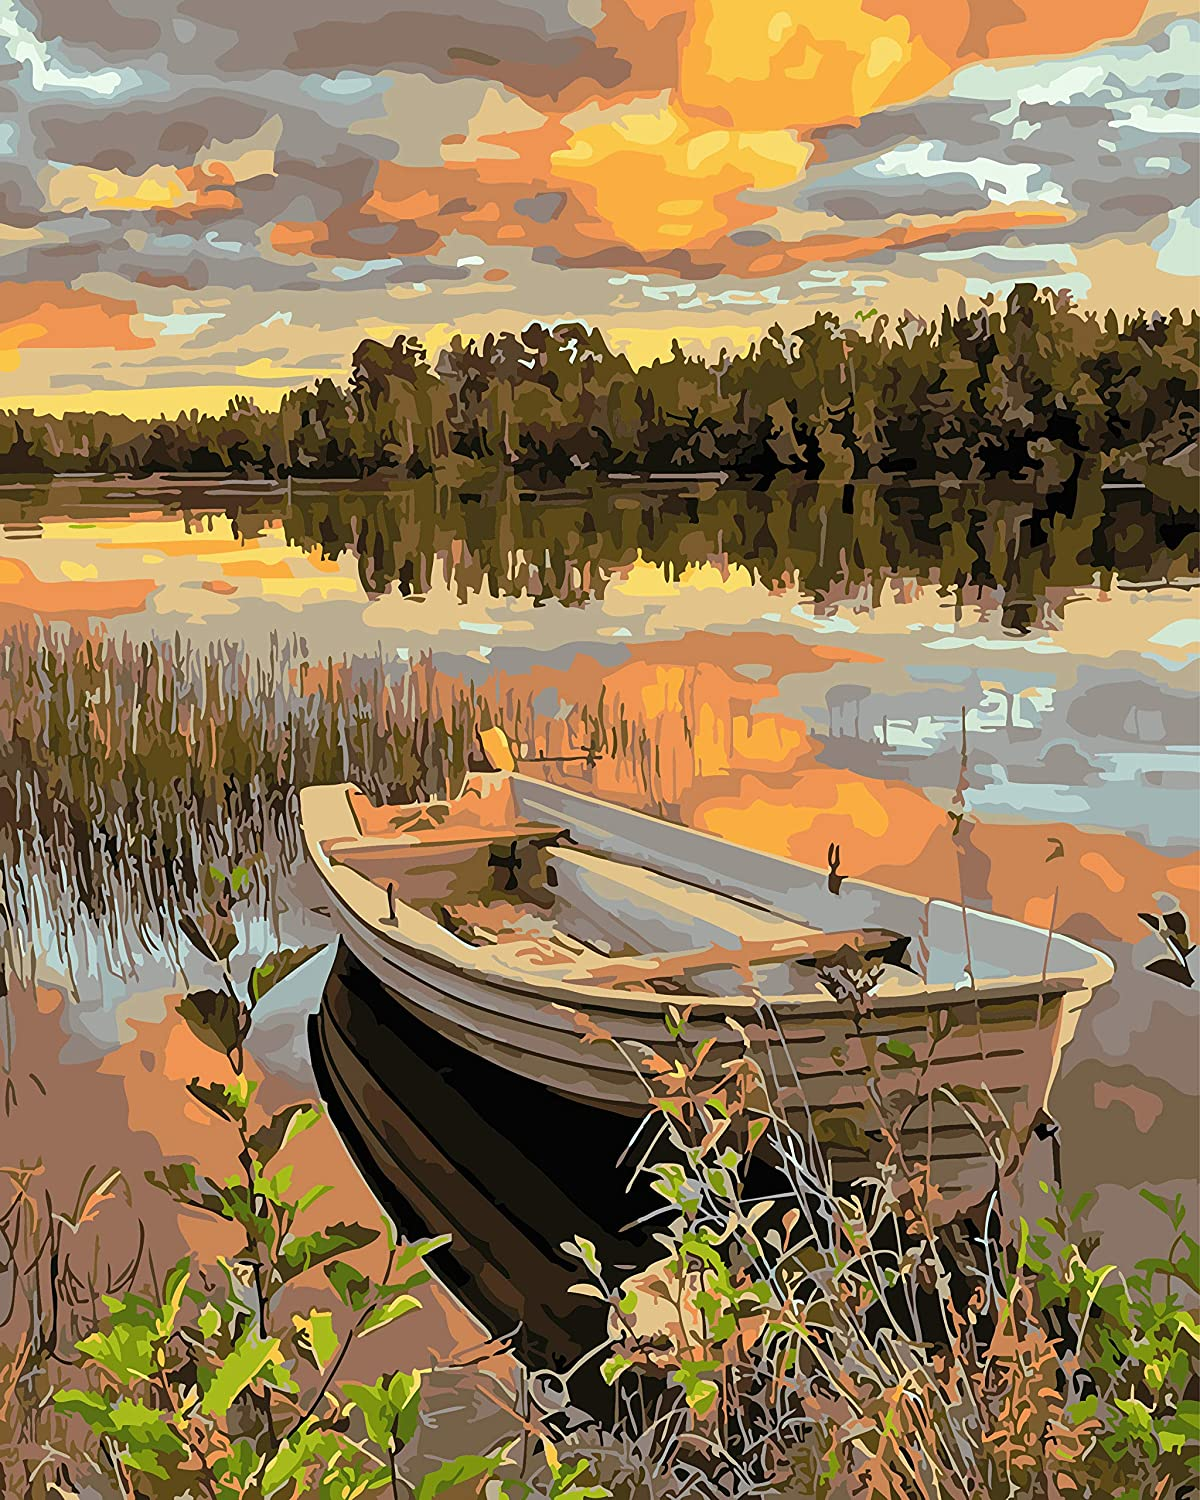 "Amazon.com: COLORWORK DIY Paint by Numbers, Canvas Oil Painting Kit for  Adults, 16"" W x 20"" L Drawing Paintwork with Paintbrushes, Acrylic  Pigment-Lakeside Boat"